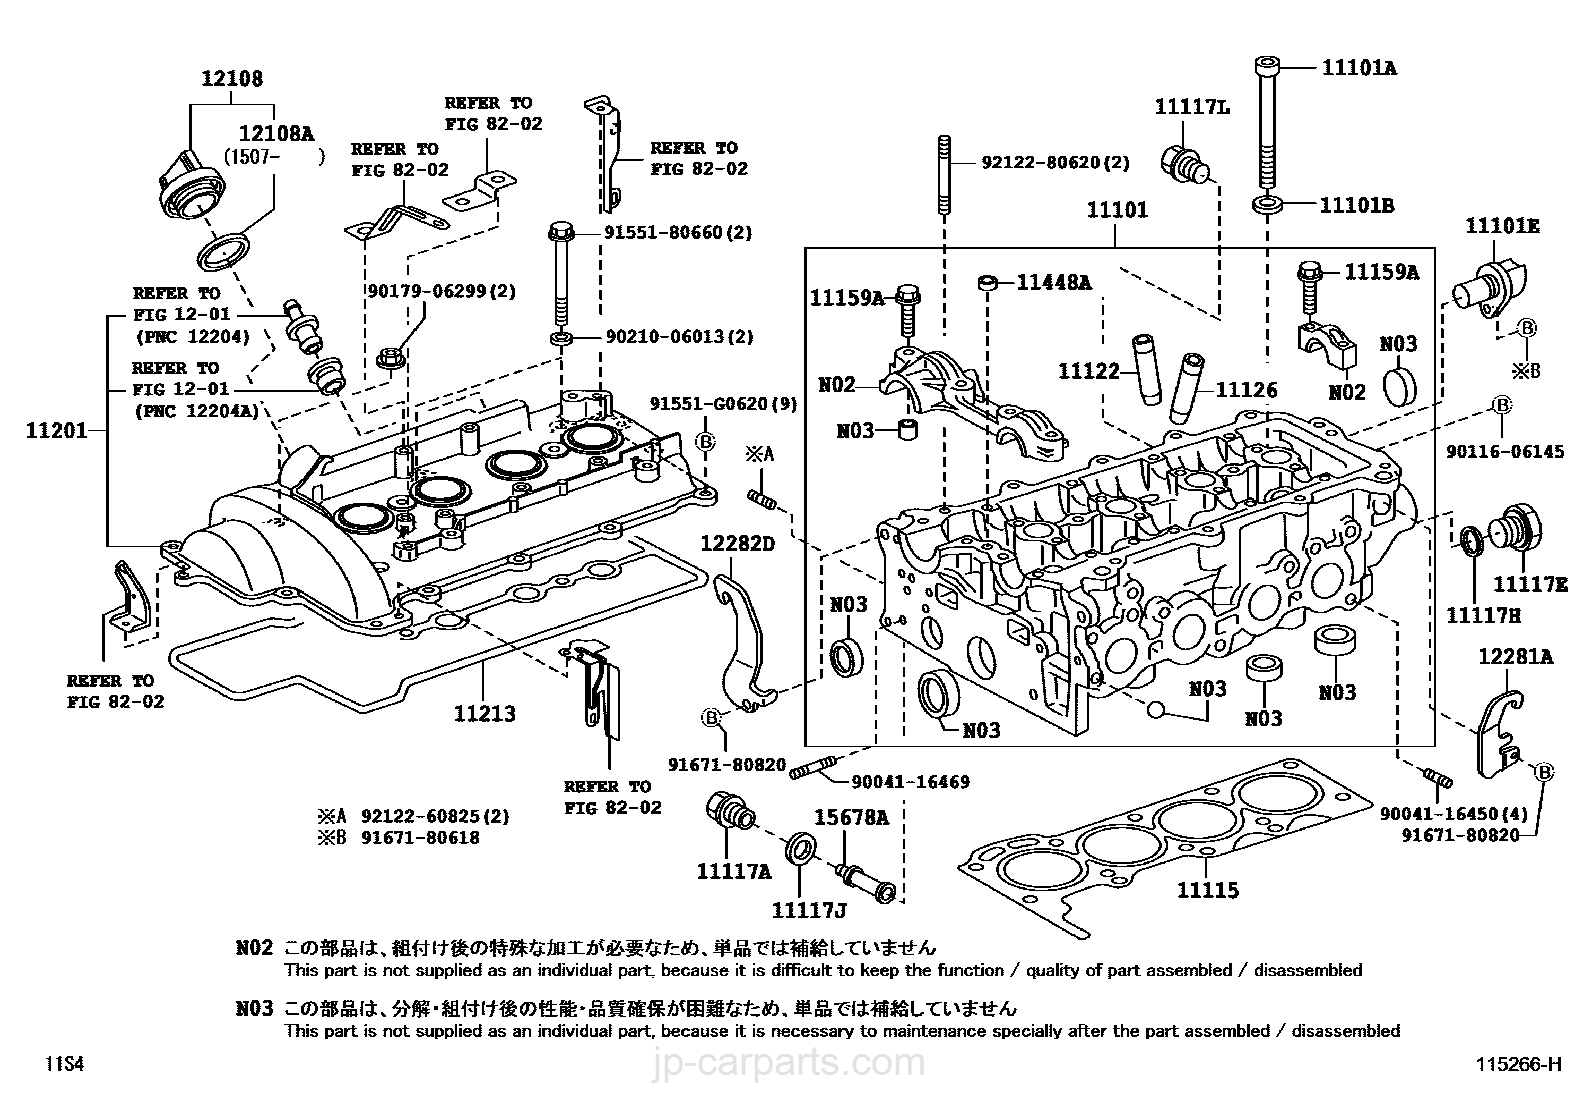 Perodua Kembara Engine Diagram Singer Furnace Wiring Schematic